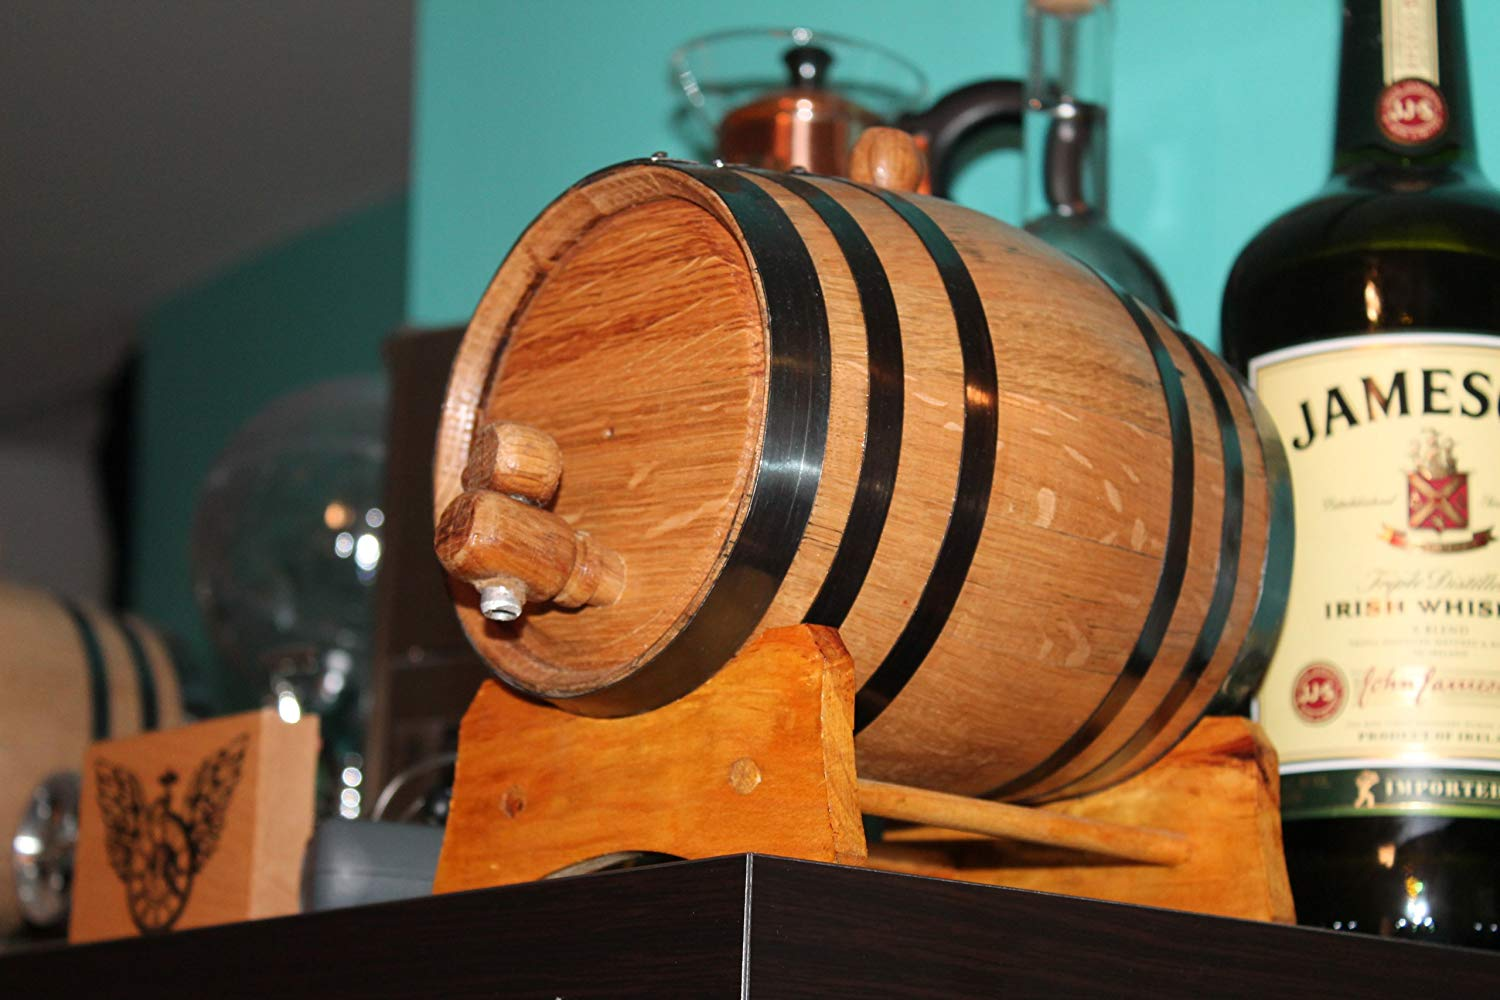 A wooden liquor dispenser for a 4th anniversary gift? Yes, please!